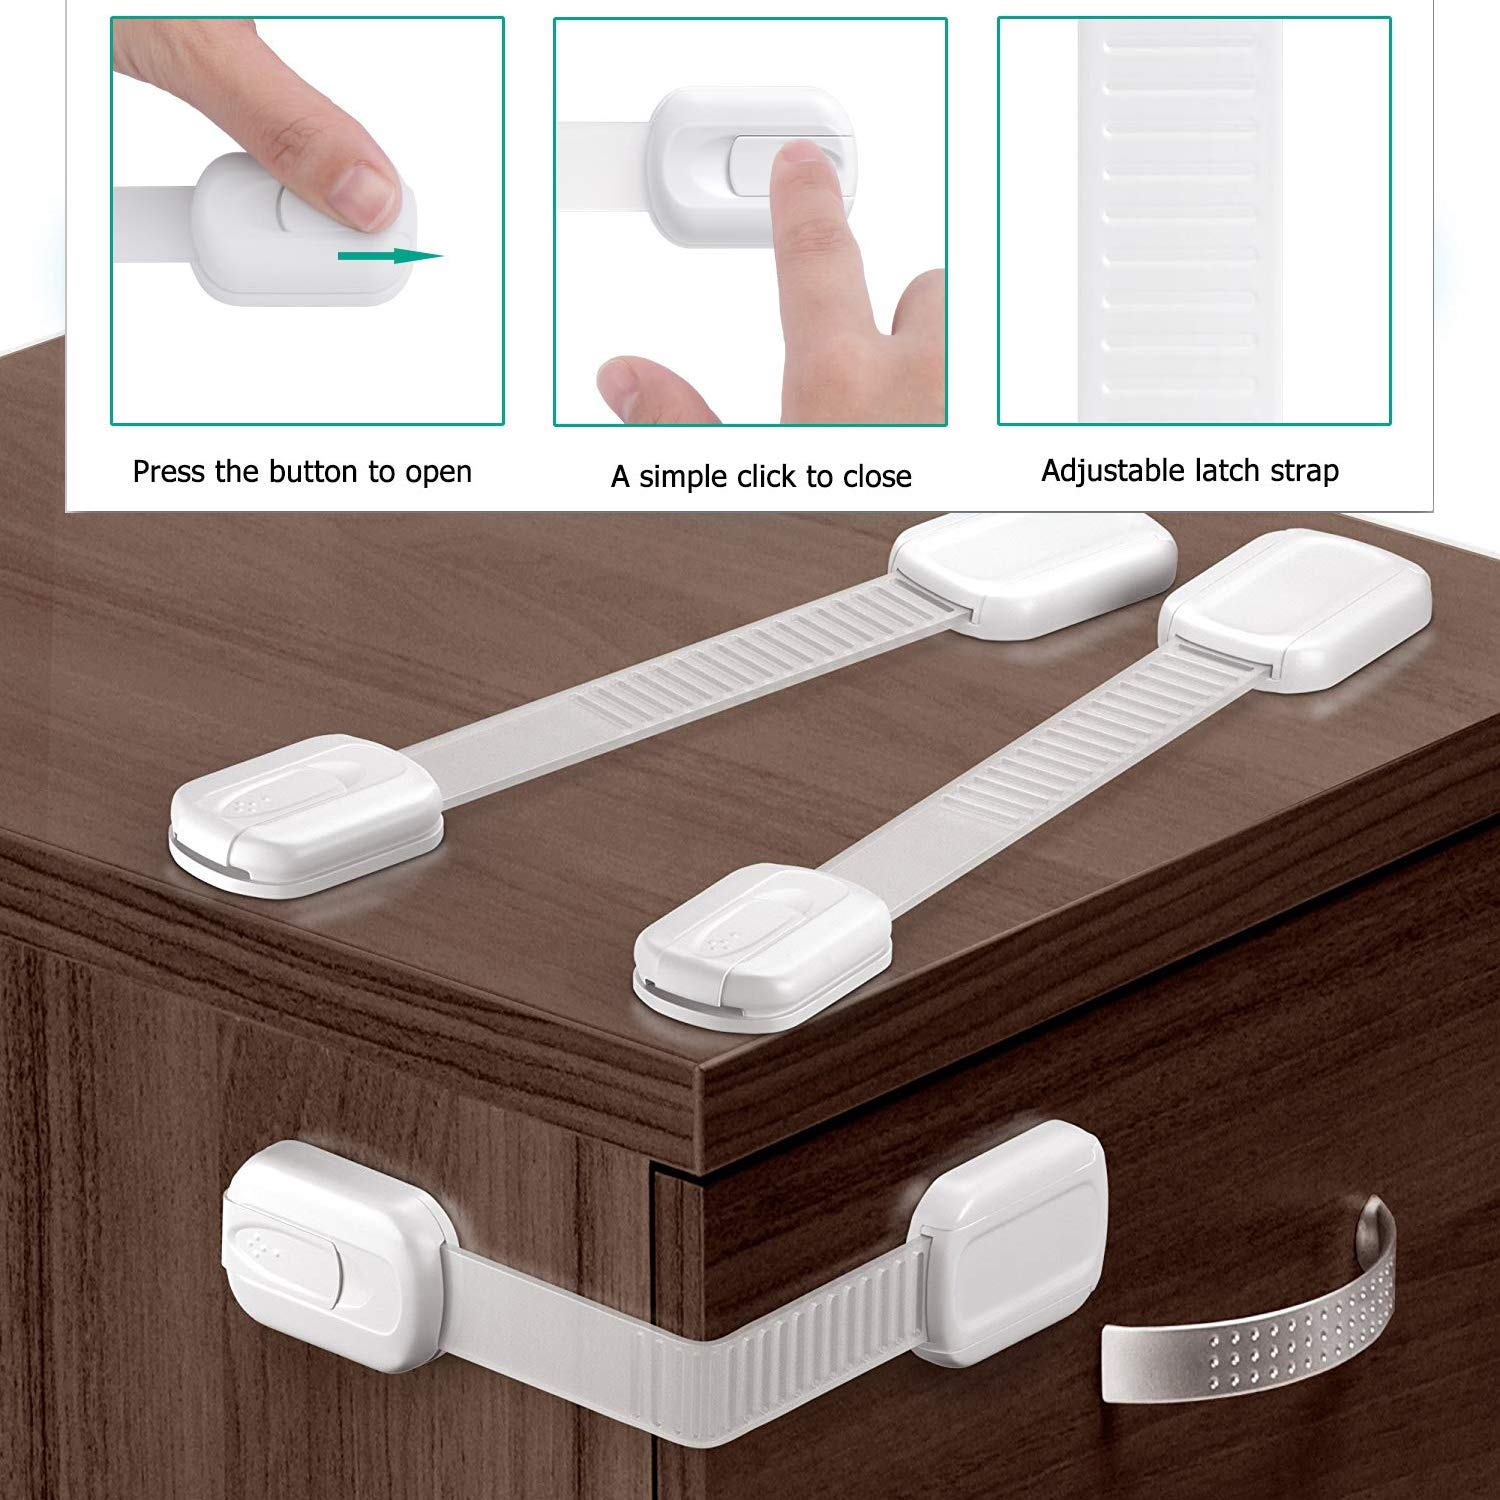 White Kitchen Cabinet Locks Child Safety OKEFAN 20 Pcs Baby Proof Kit Drawer Straps for Kids Bathroom Cupboard Oven Refrigerator Microwave Toilet Latches